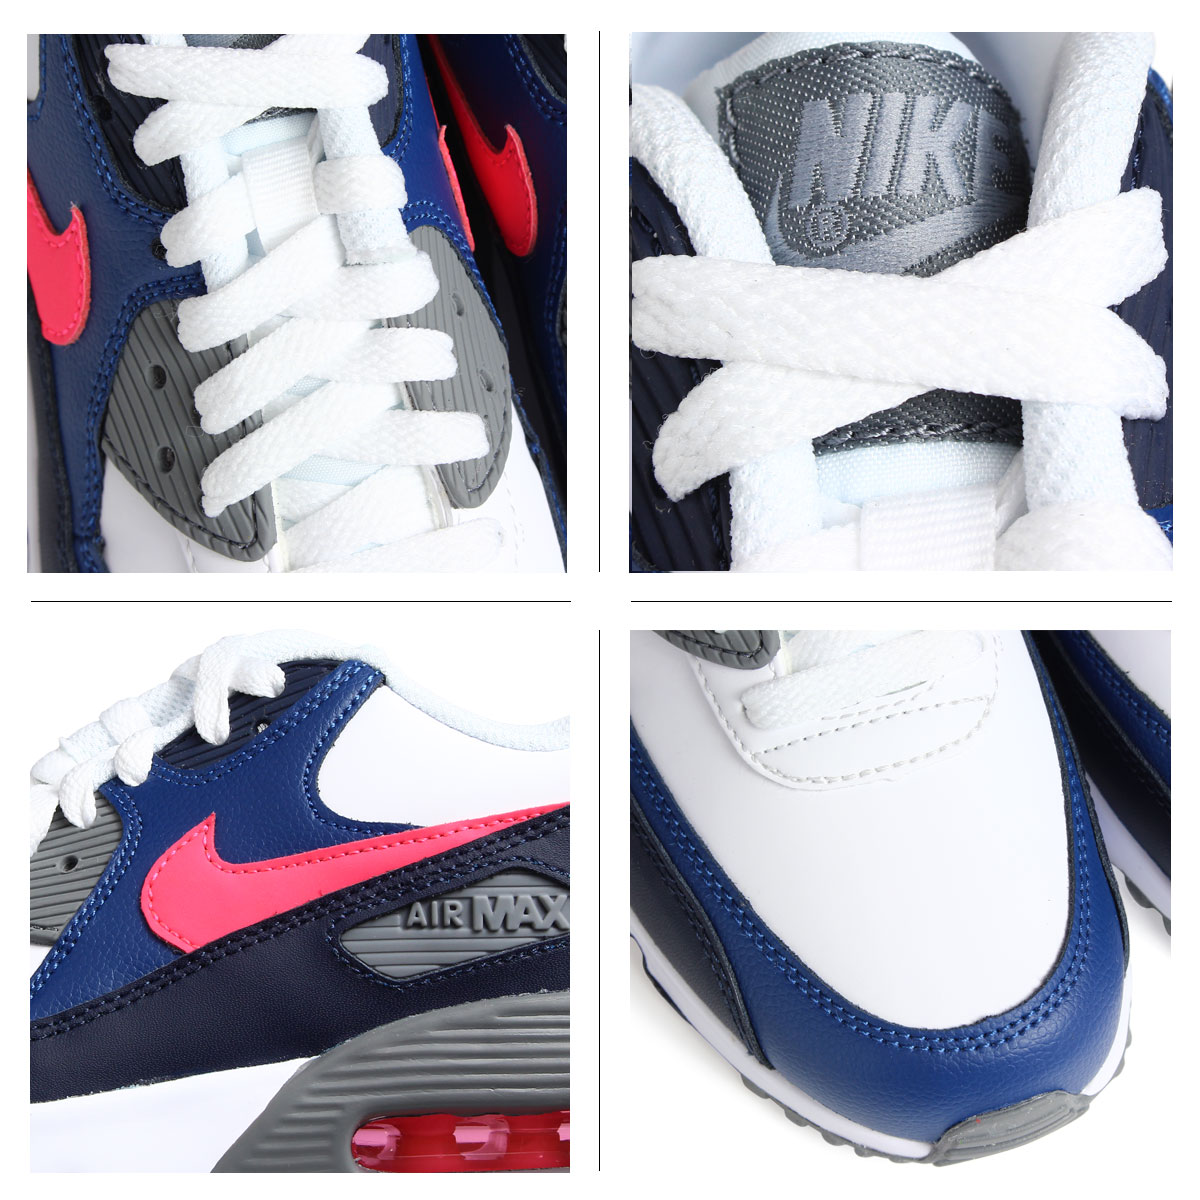 newest 3a5c4 cc526 ... NIKE AIR MAX 90 LEATHER GS Kie Ney AMAX 90 Lady's sneakers 833,412-109  shoes ...